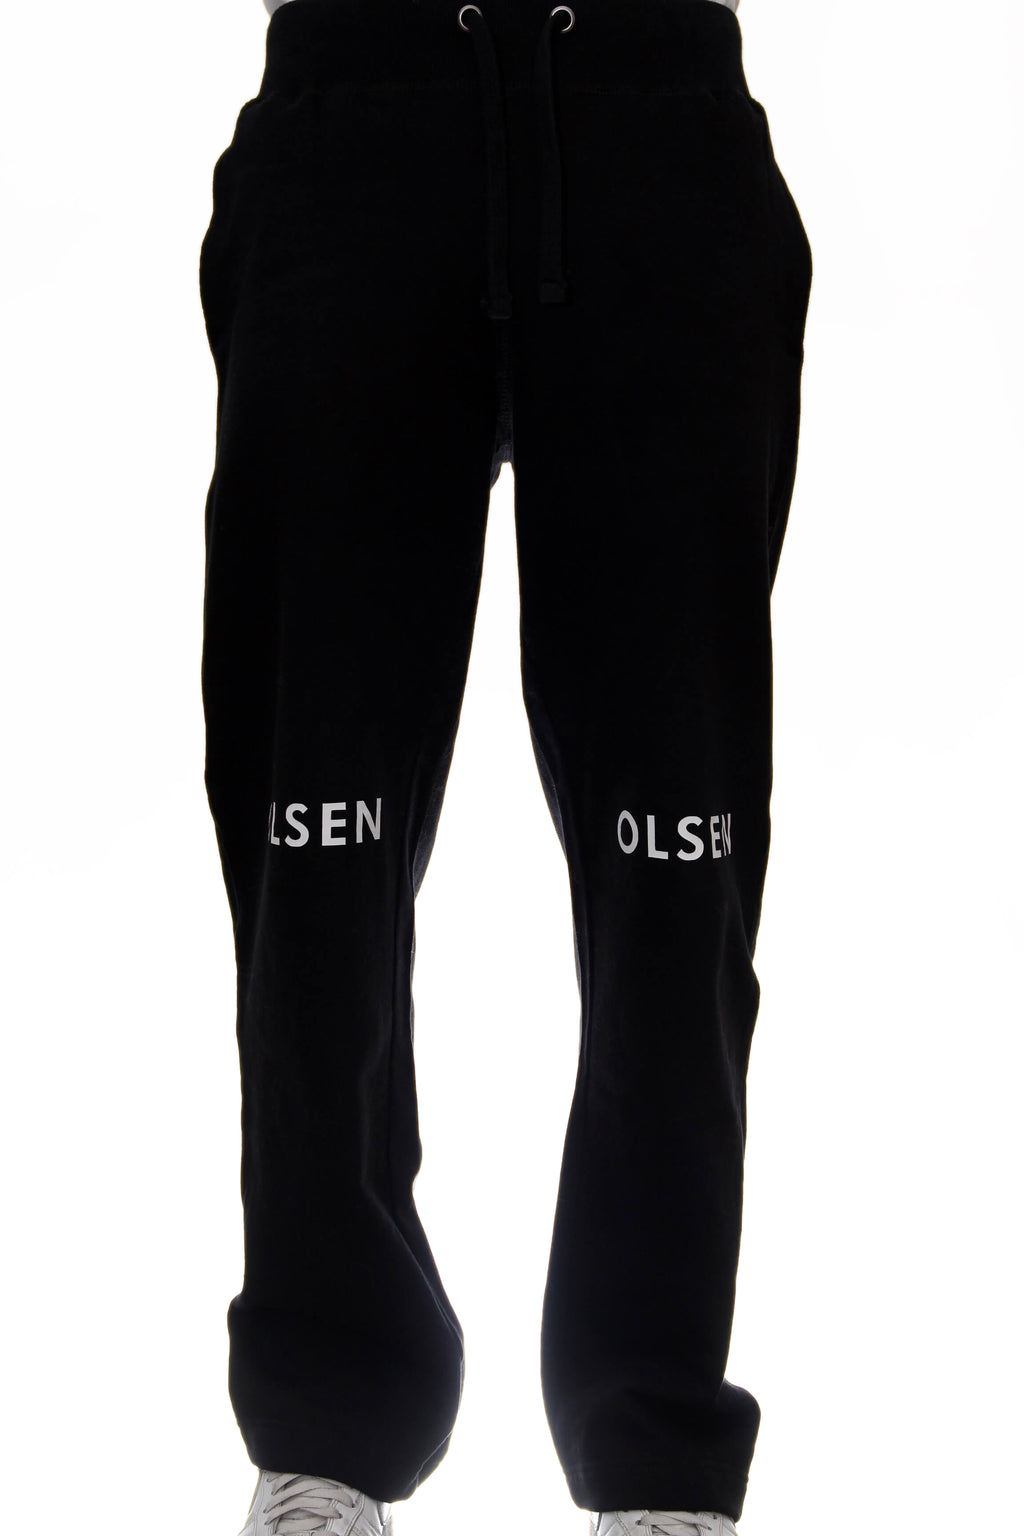 SWEATPANTS / BLACK